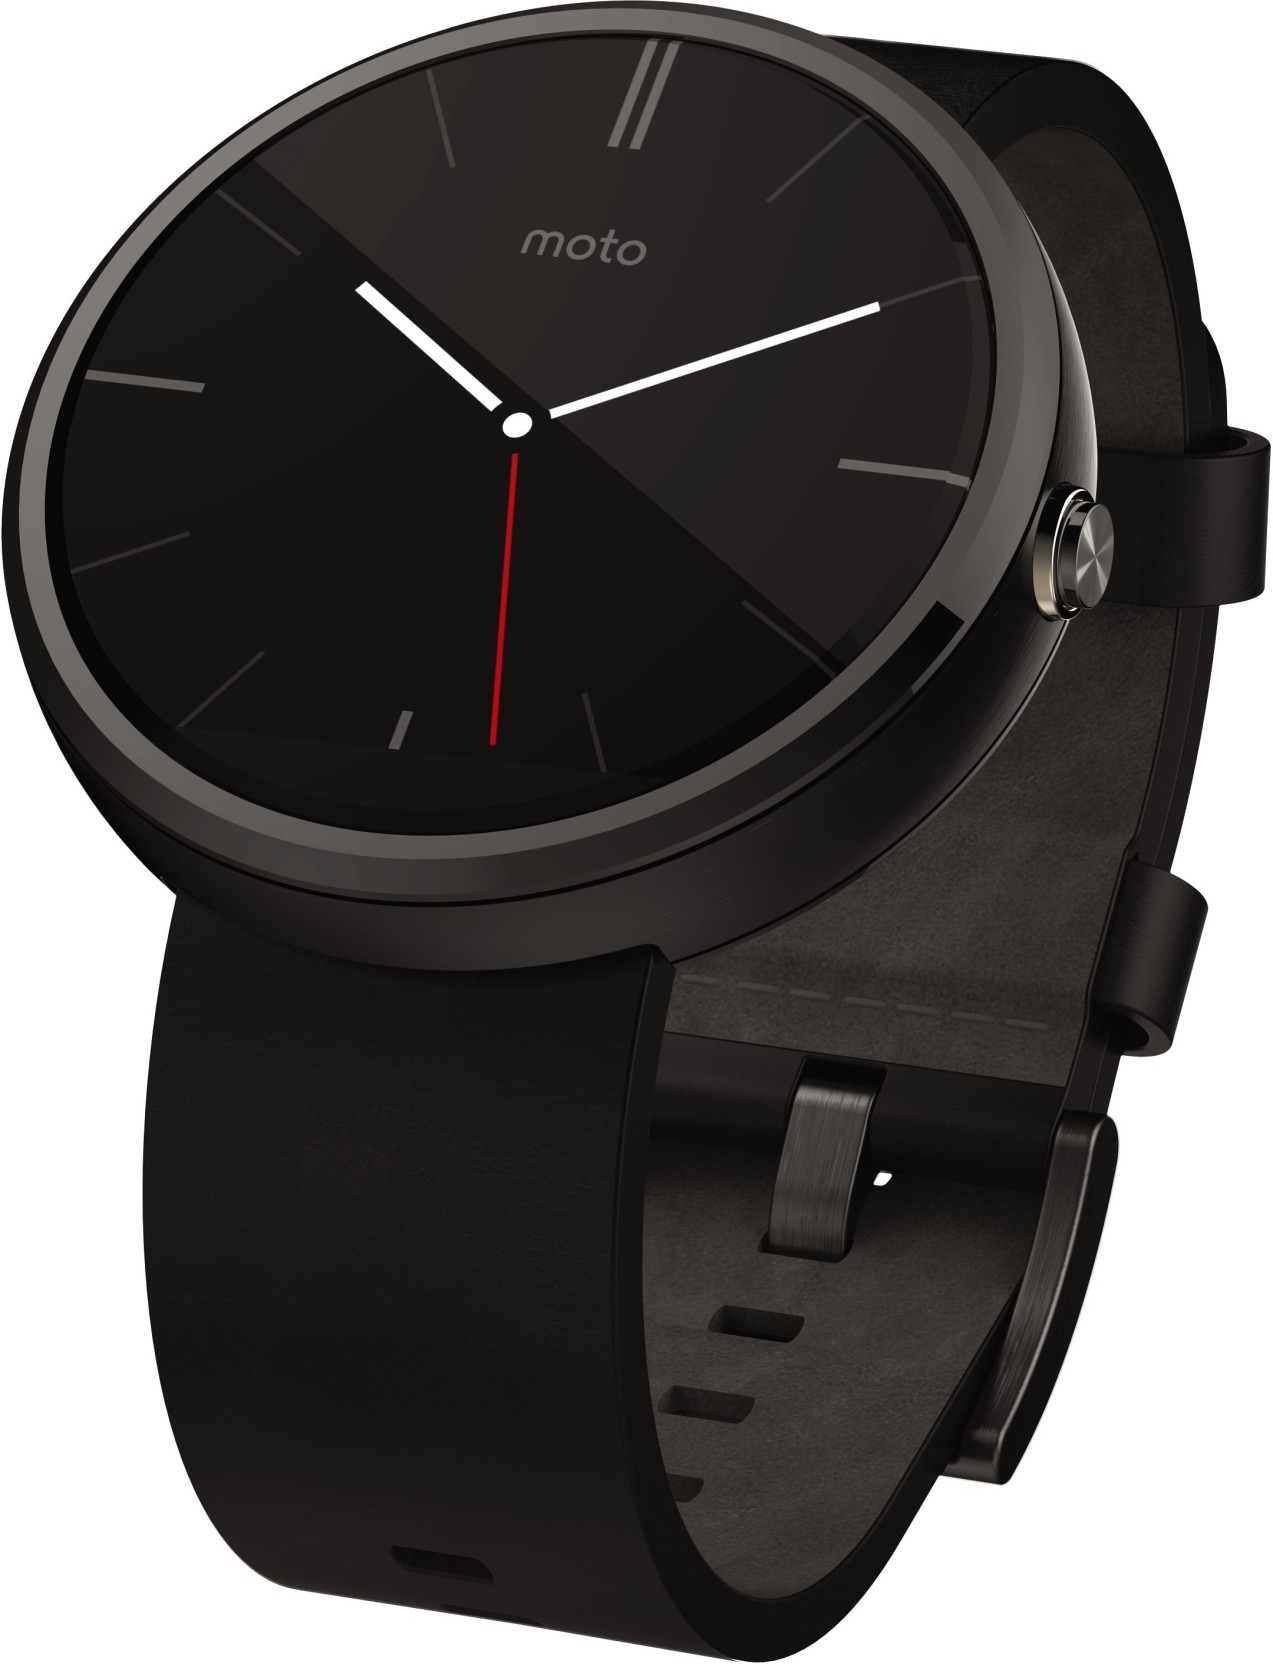 Motorola Moto 360 Black Leather Smartwatch Price in India ...